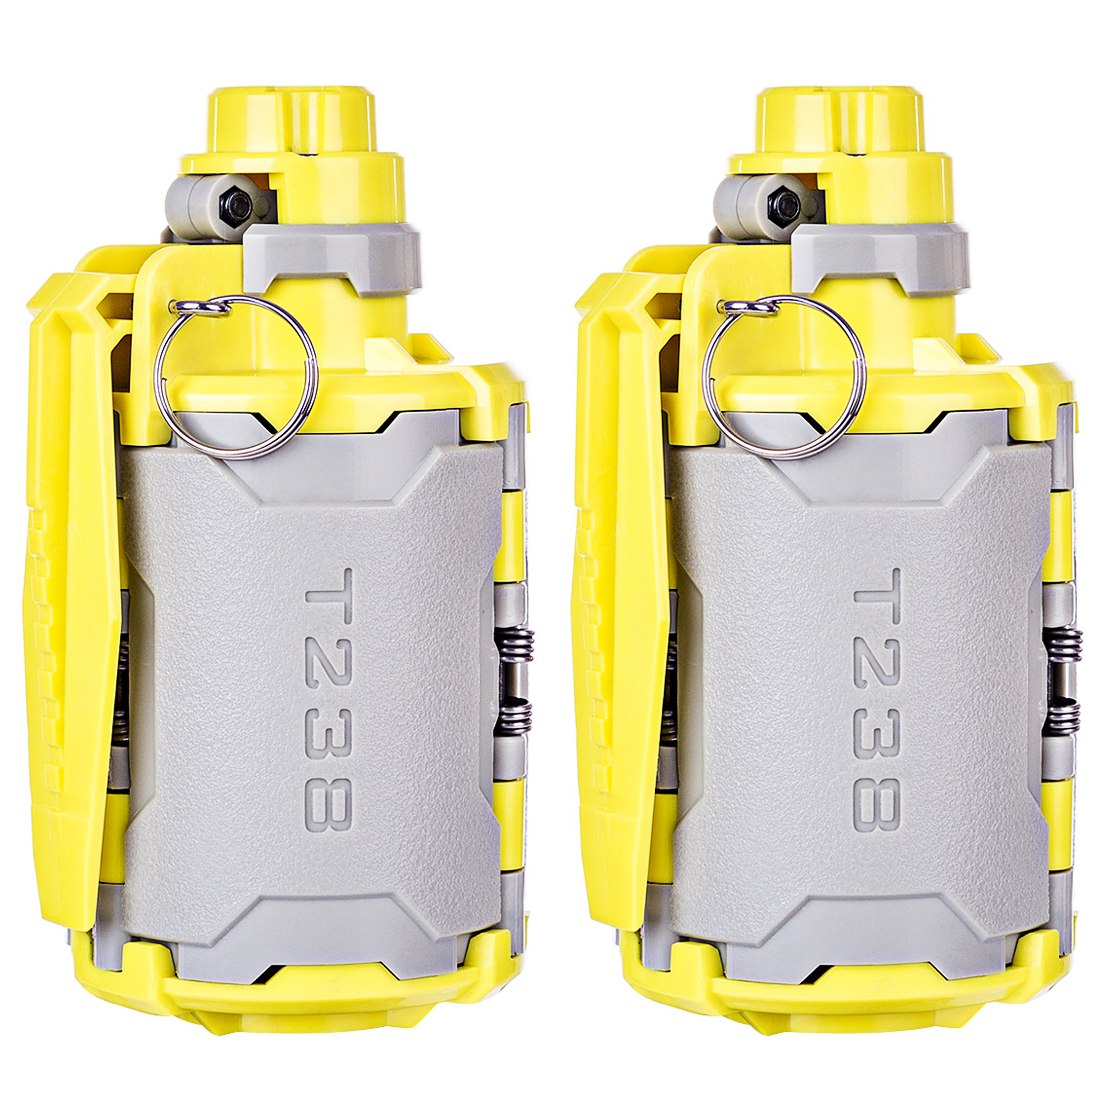 2 Pcs/Lot <font><b>T238</b></font> <font><b>V2</b></font> Large Capacity Water Bomb With Time-Delayed Function For Gel Ball BBs Airsoft Wargame -Grey + Yellow image